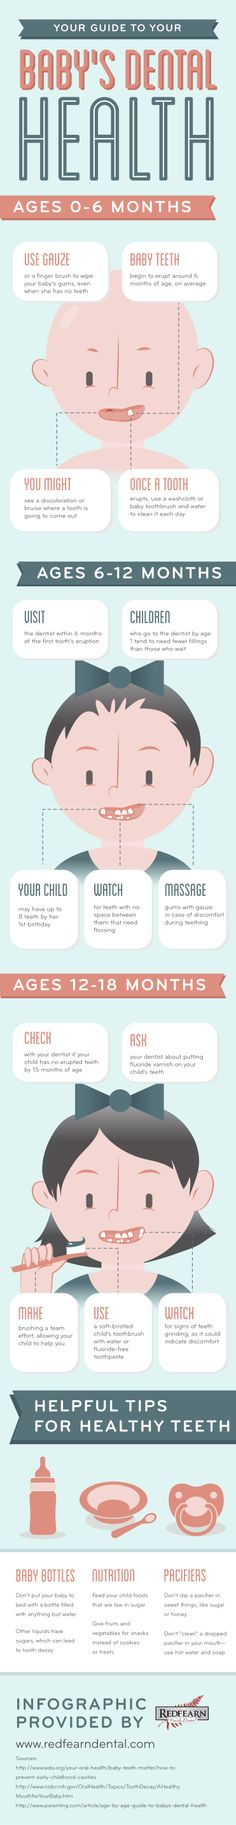 Sugars in certain liquids can lead to tooth decay when sipped throughout the night. That is why it is important to only put babies to bed with bottles filled with water. Learn more about your baby's dental health by clicking over to this Highlands Ranch dentist infographic.